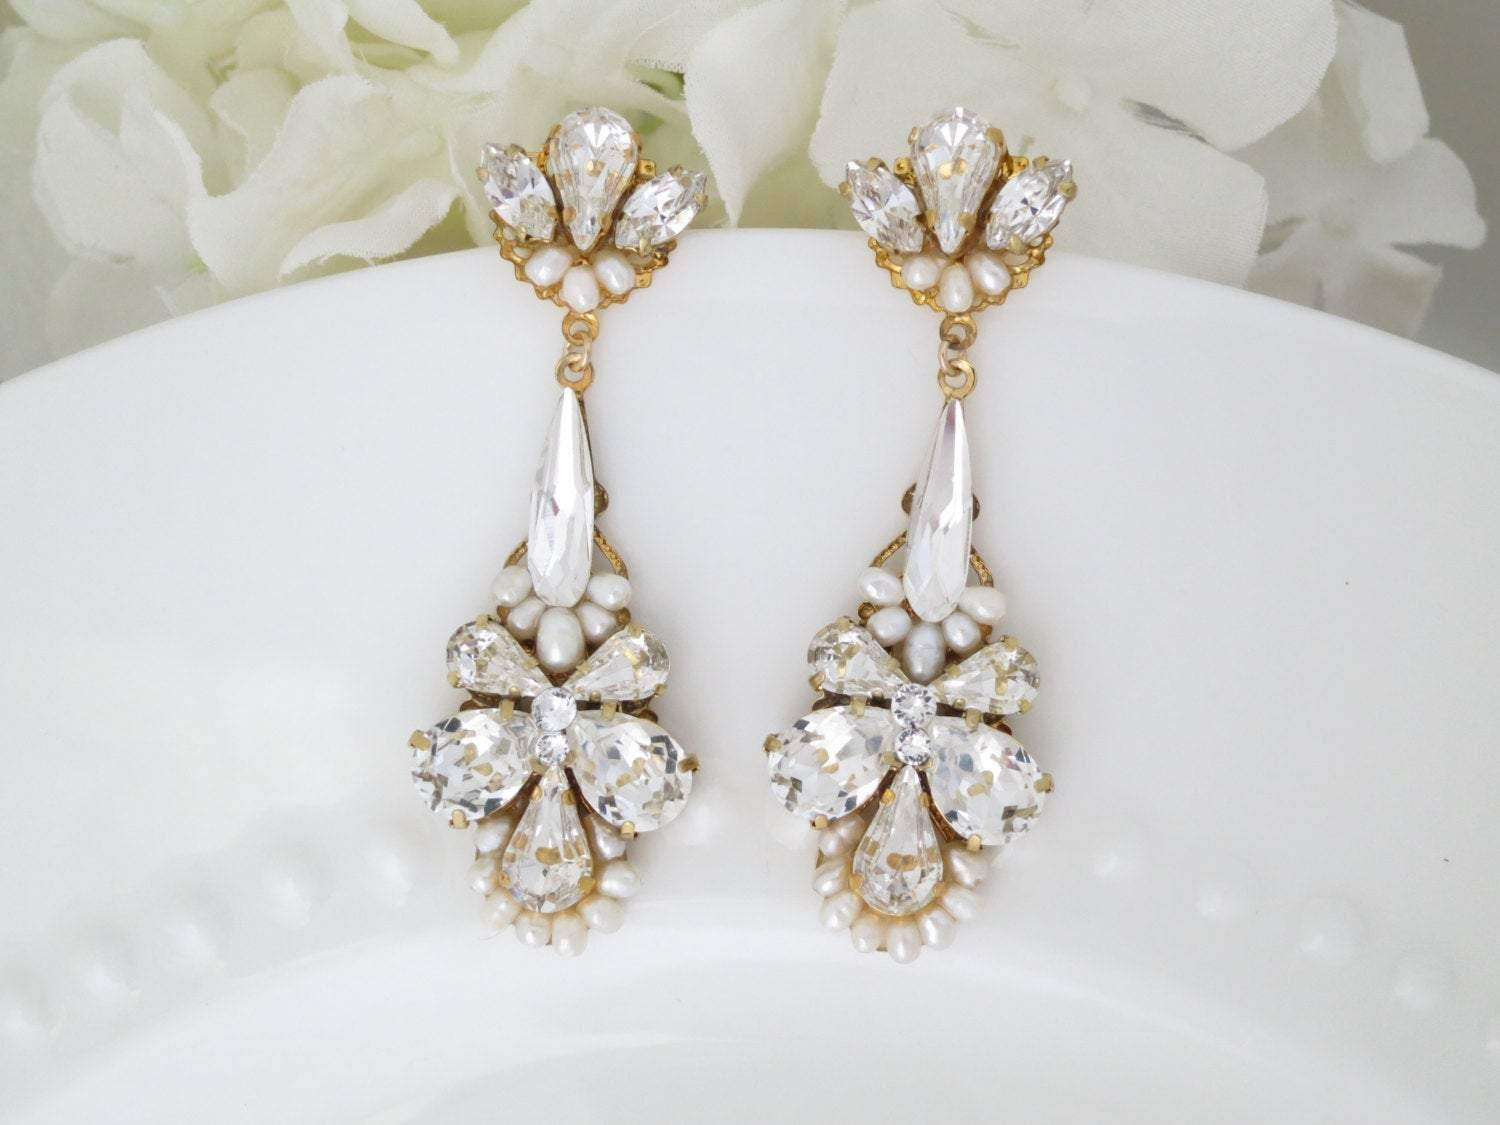 LACEY:  Crystal Teardrop Bridal Earrings - BlingBaddaBoom - Minimalist, Vintage, Modern Wedding and Bridal Jewelry